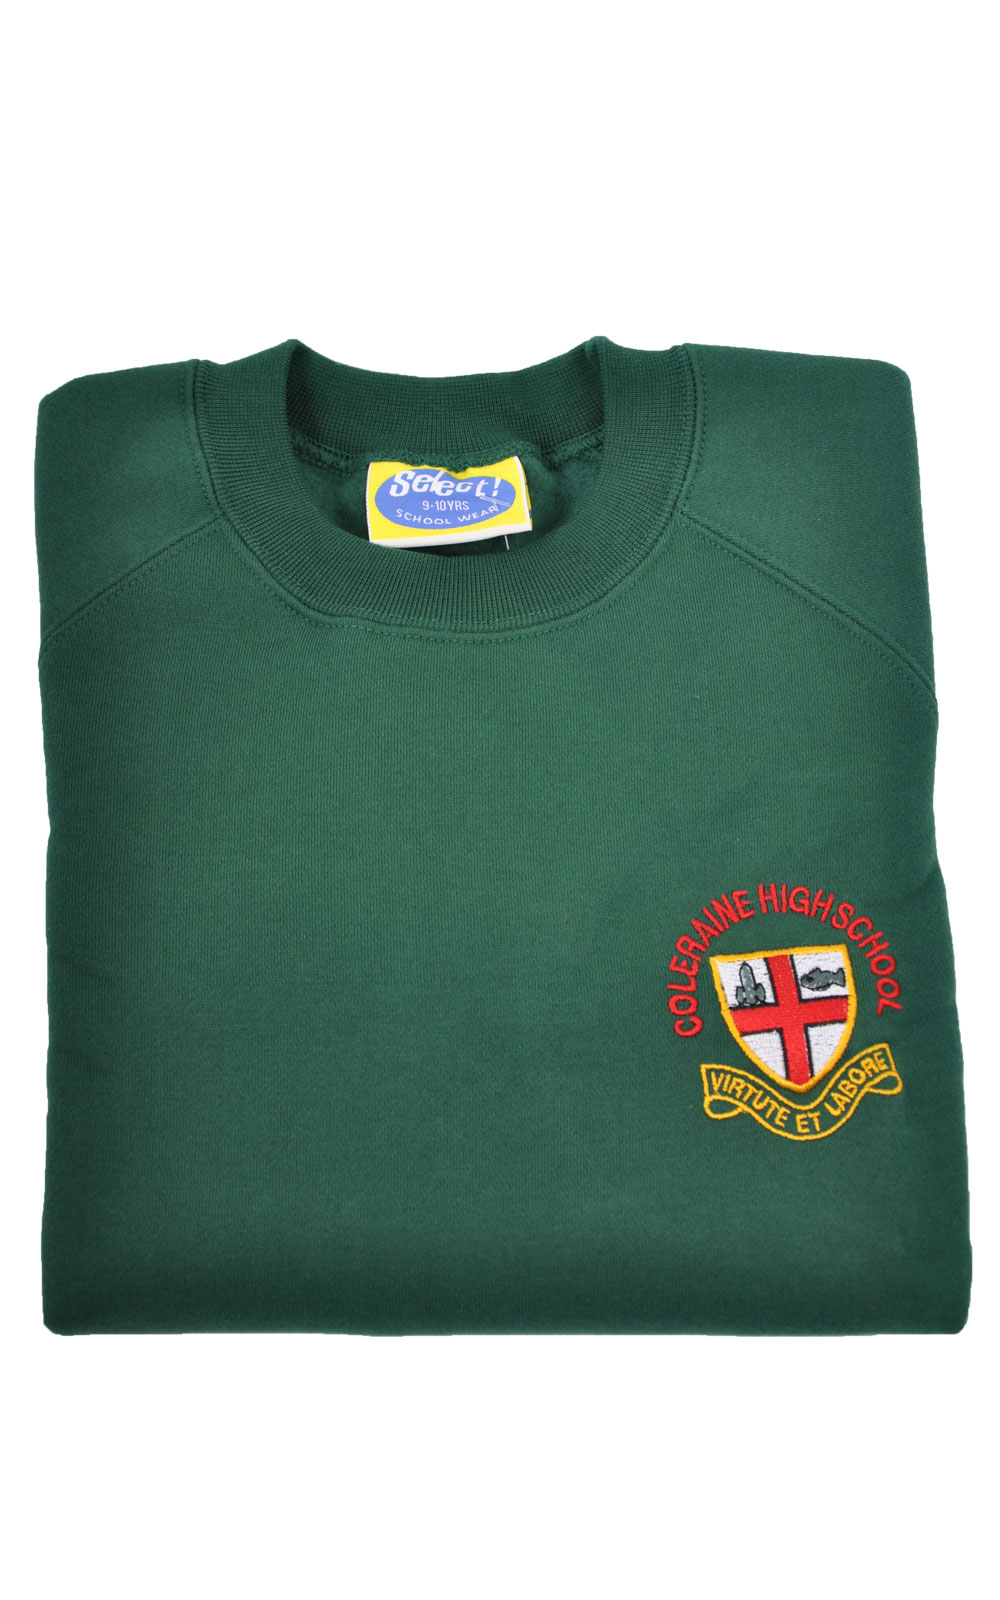 Picture of Coleraine High School PE Sweatshirt